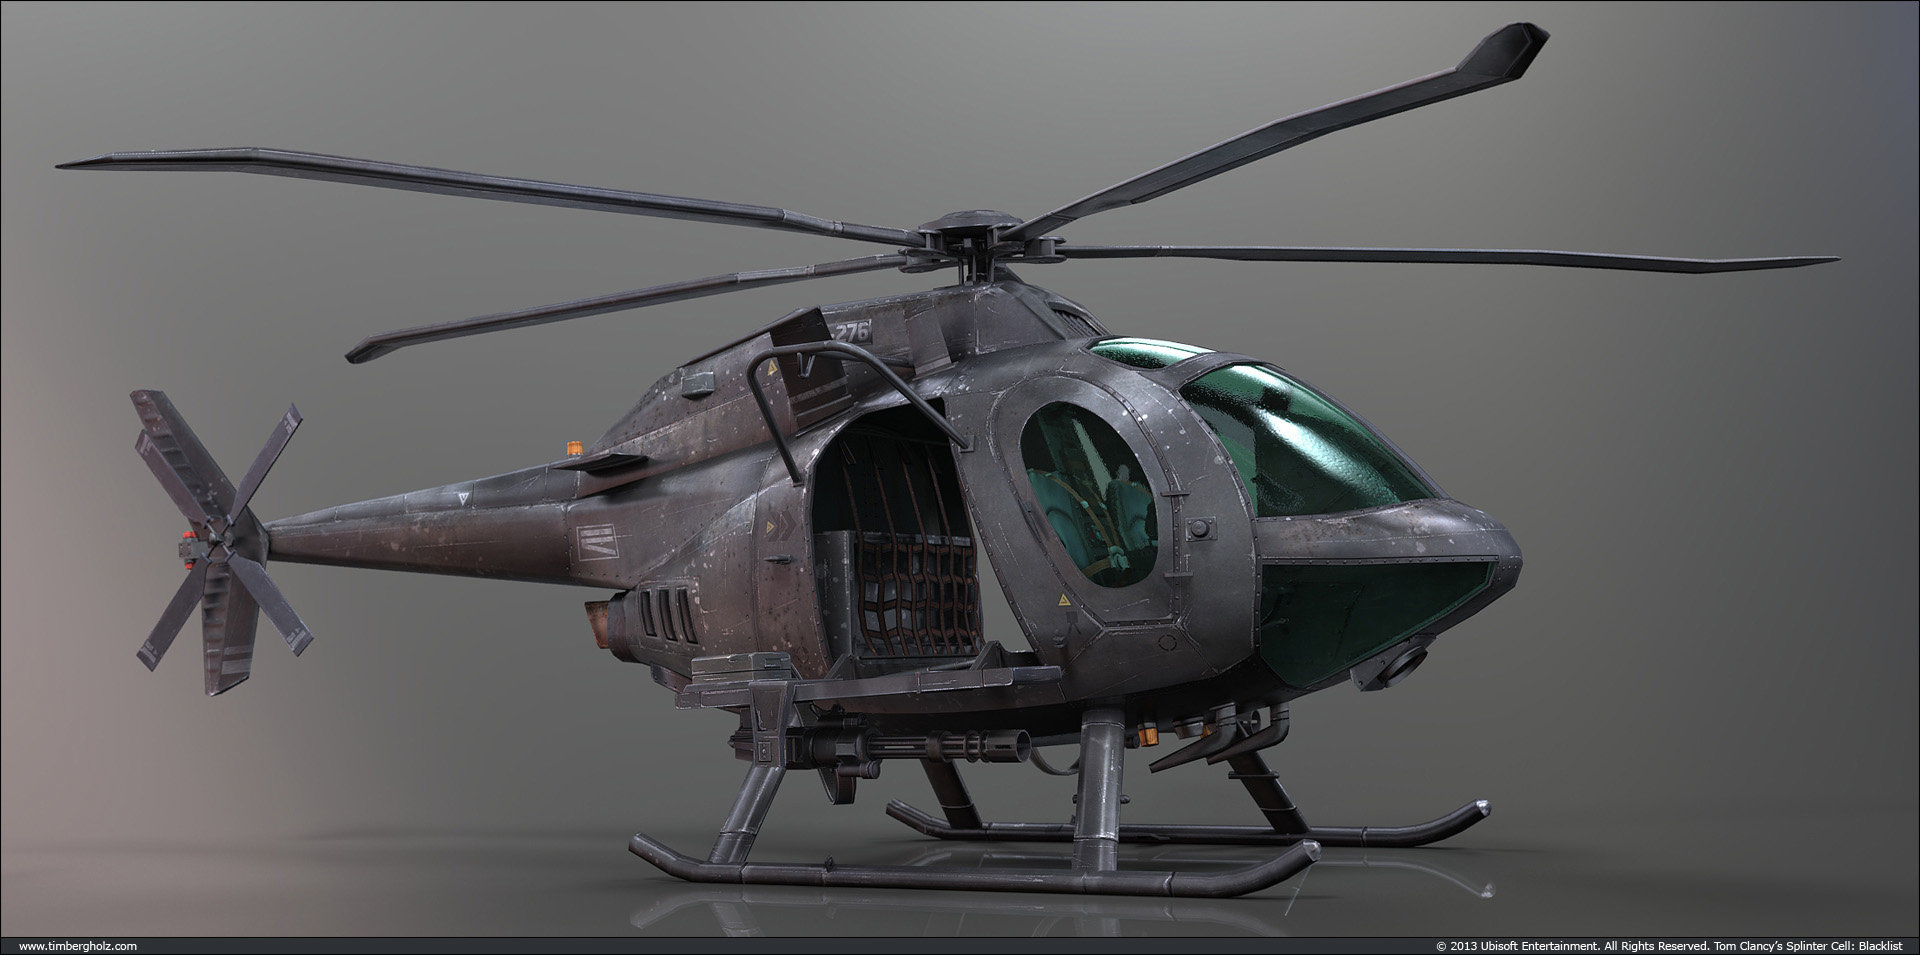 Tim bergholz observation helicopter